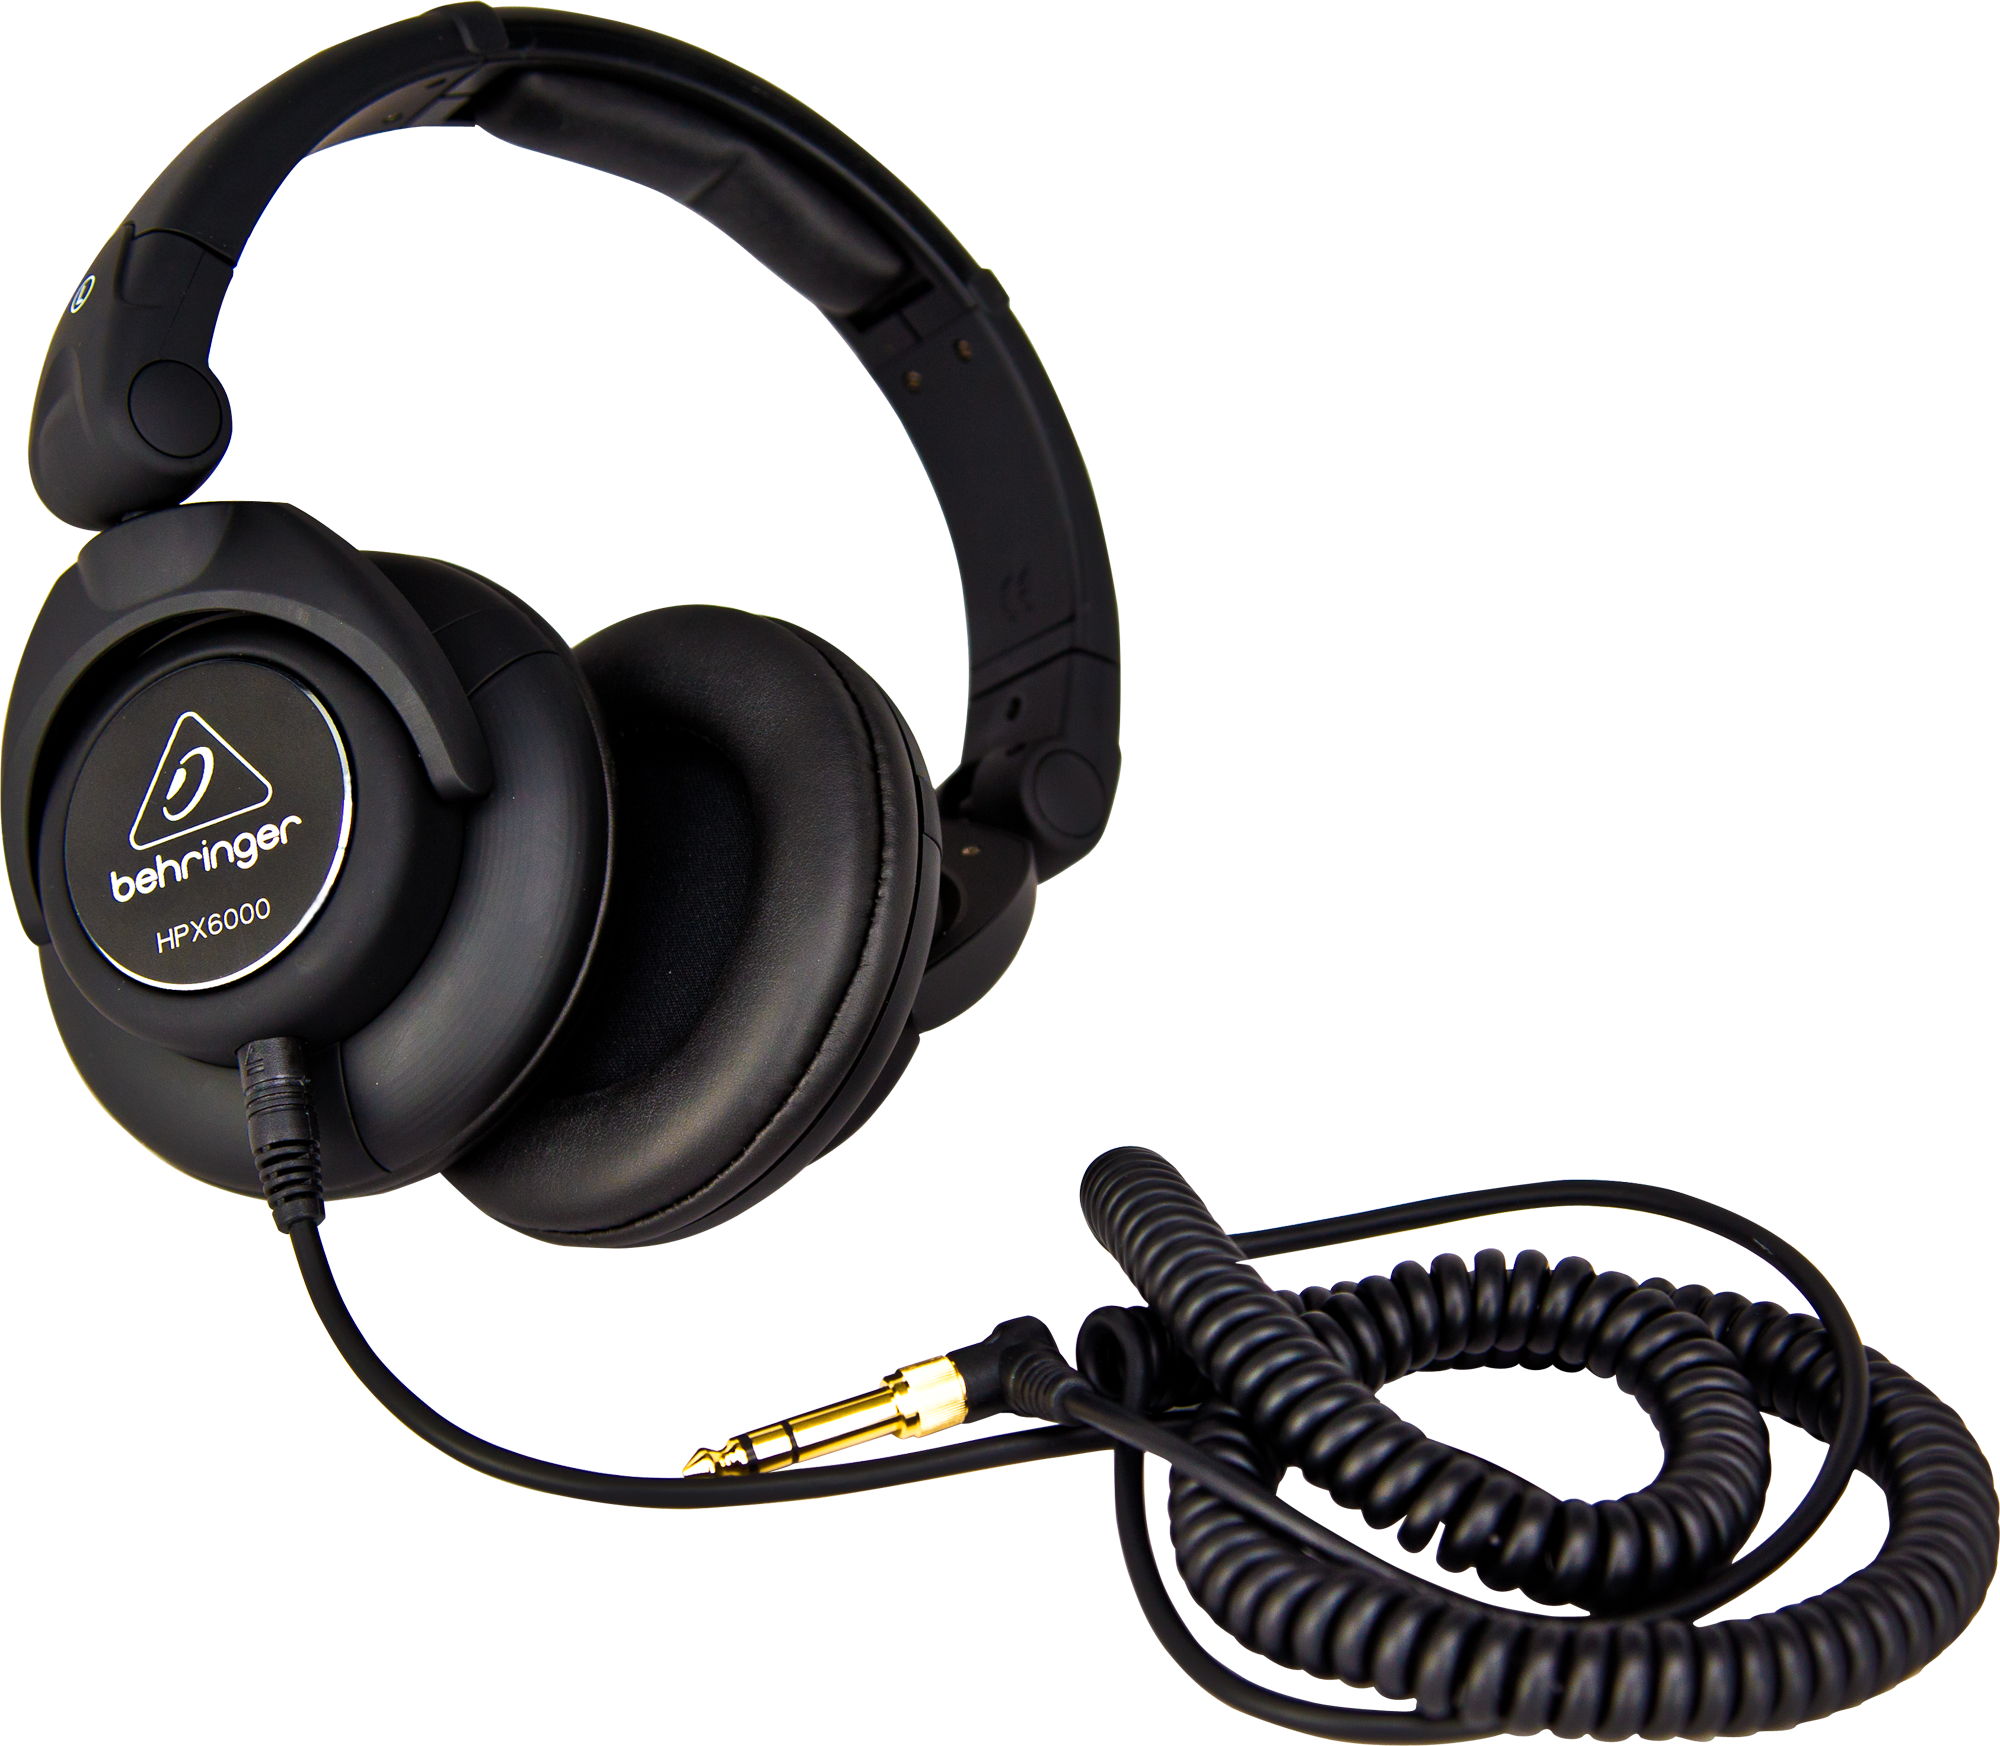 Dj headphone png. Behringer hpx headphones chuck